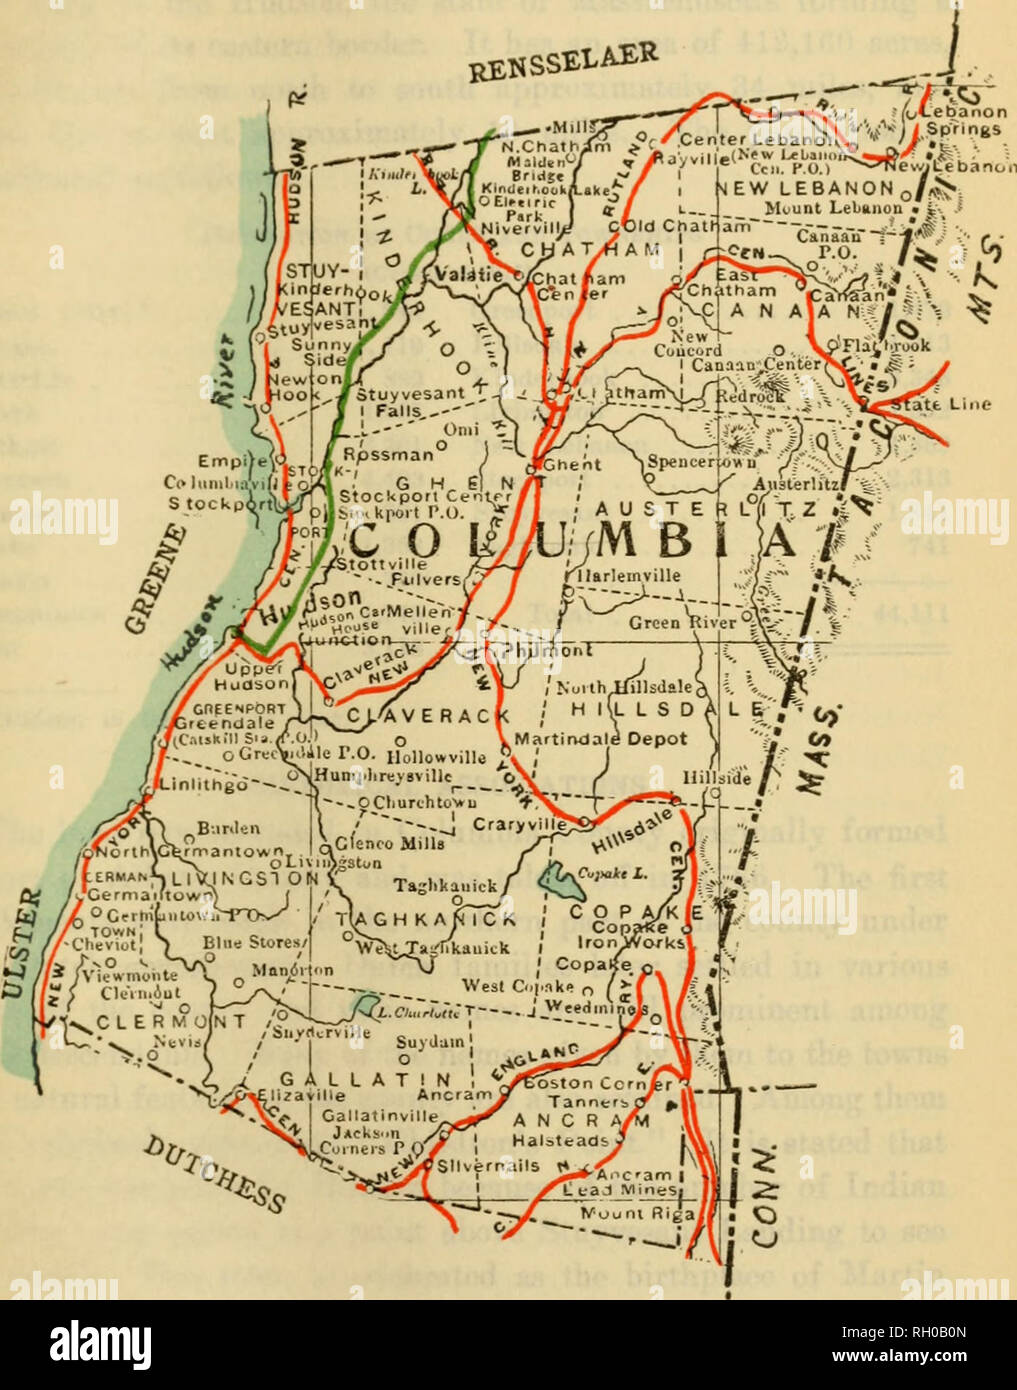 Map Of Columbia County Ny : columbia, county, Bulletin., Agriculture., Columbia, County,, Showing, Townships, Railroads;, Green,, Electric, Roada., Please, These, Images, Extracted, Scanned, Digitally, Enhanced